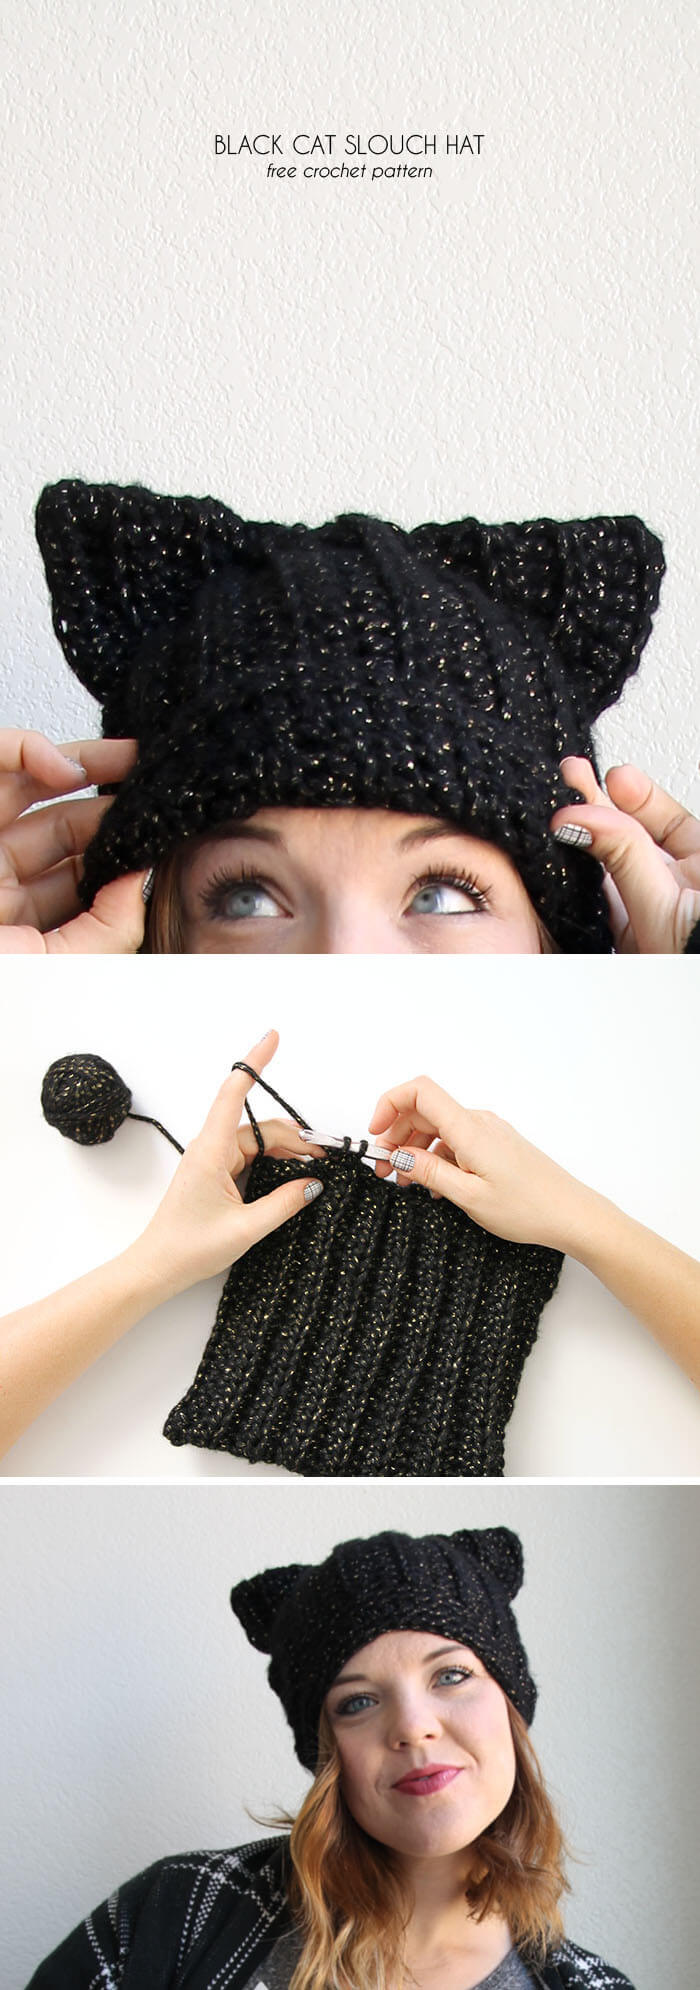 Crochet Kitty Cat Hat Pattern : Black Cat Slouch Hat - Free Crochet Cat Hat Pattern ...